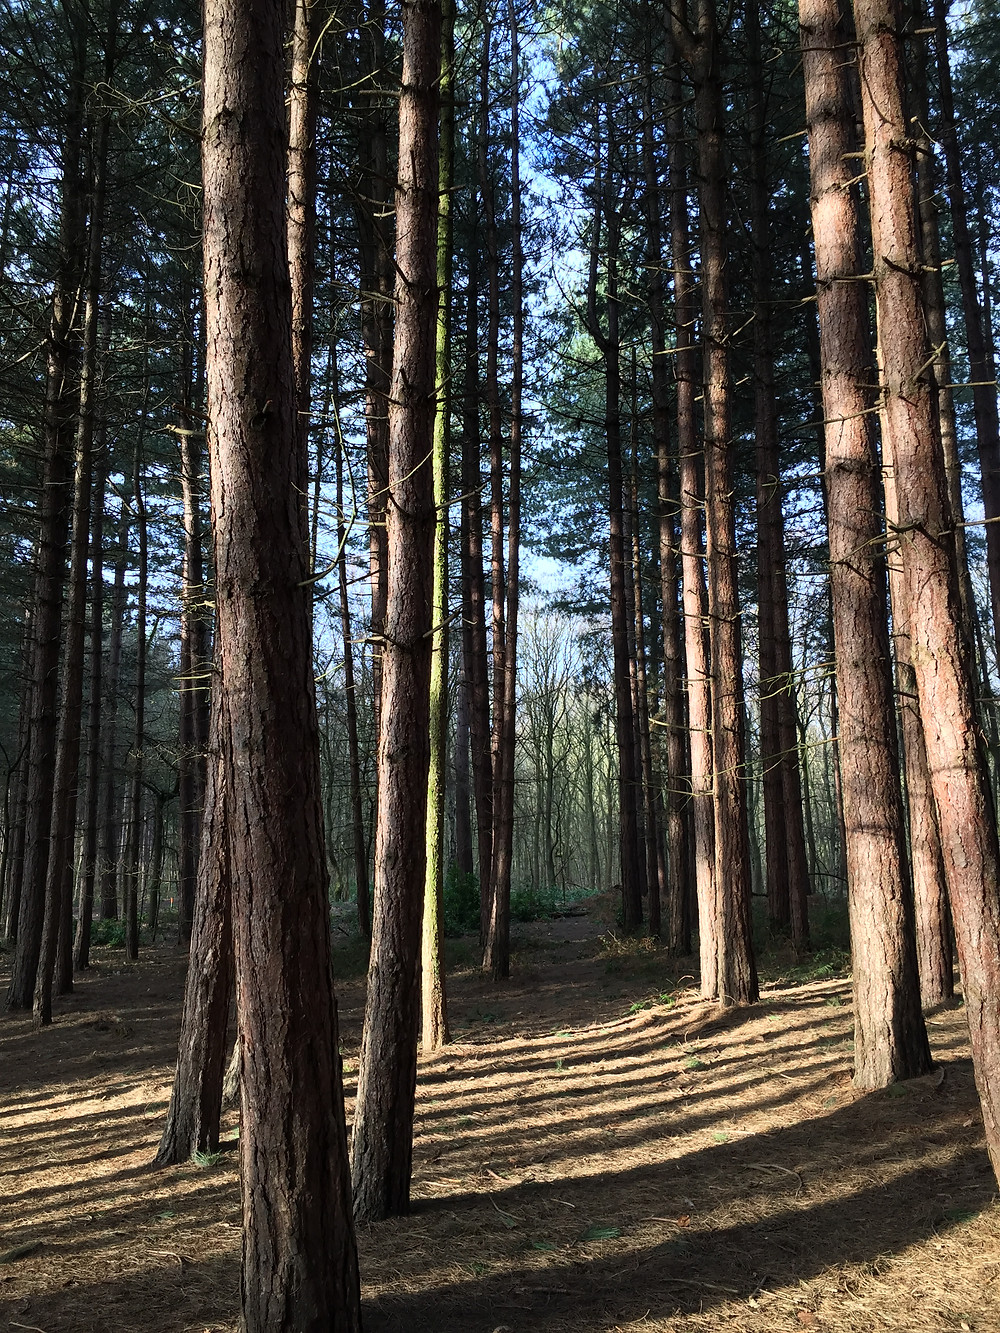 A view through the pine trees at Secker Woods, Newmillerdam with long shadows from early morning sunshine